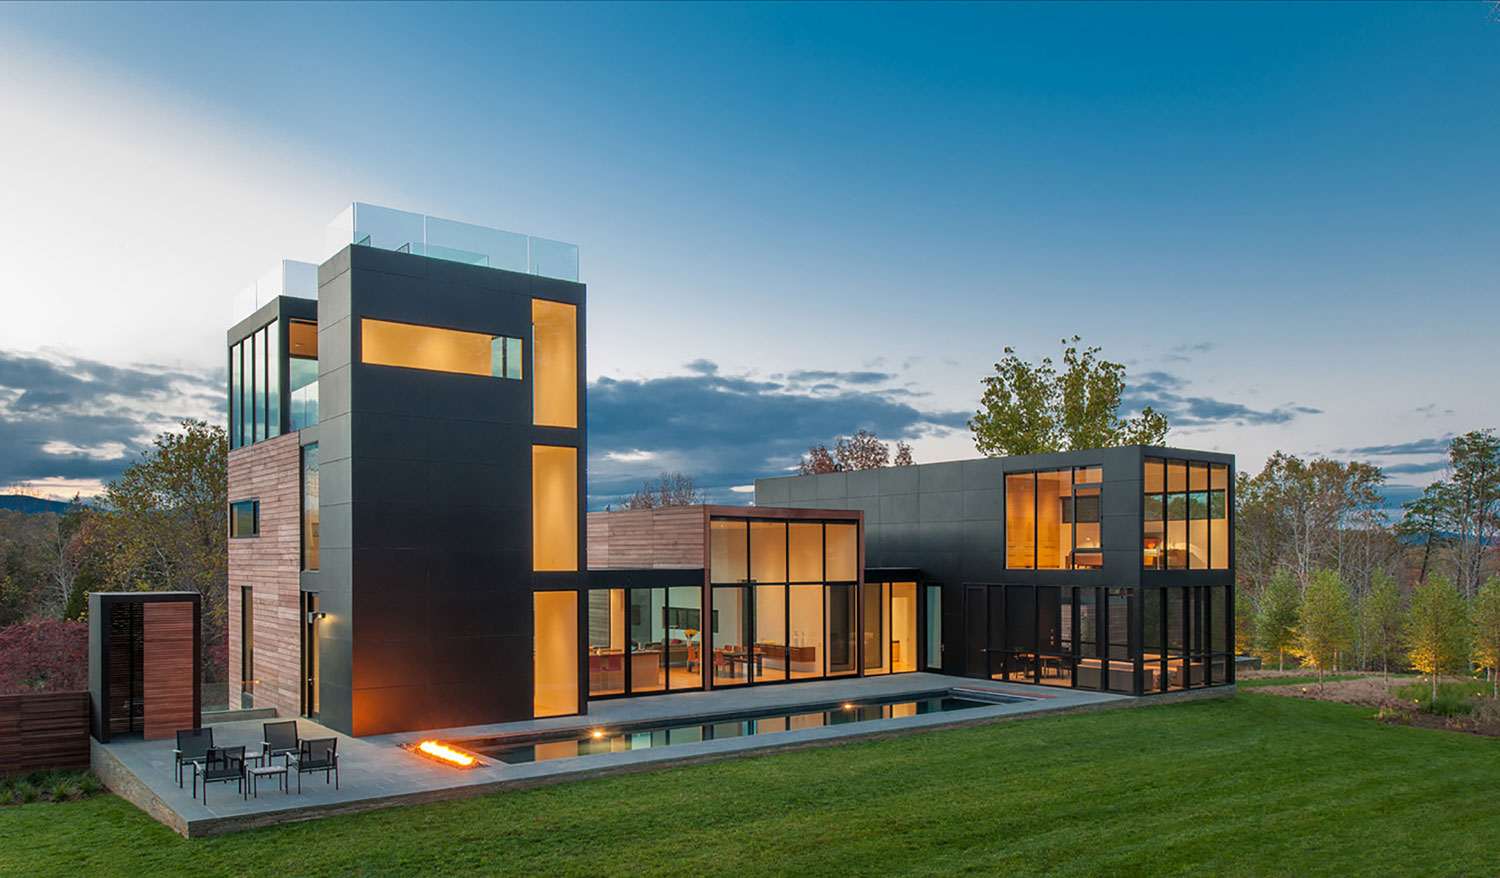 Amazing modern house in rappahannock county virginia usa for Amazing modern houses